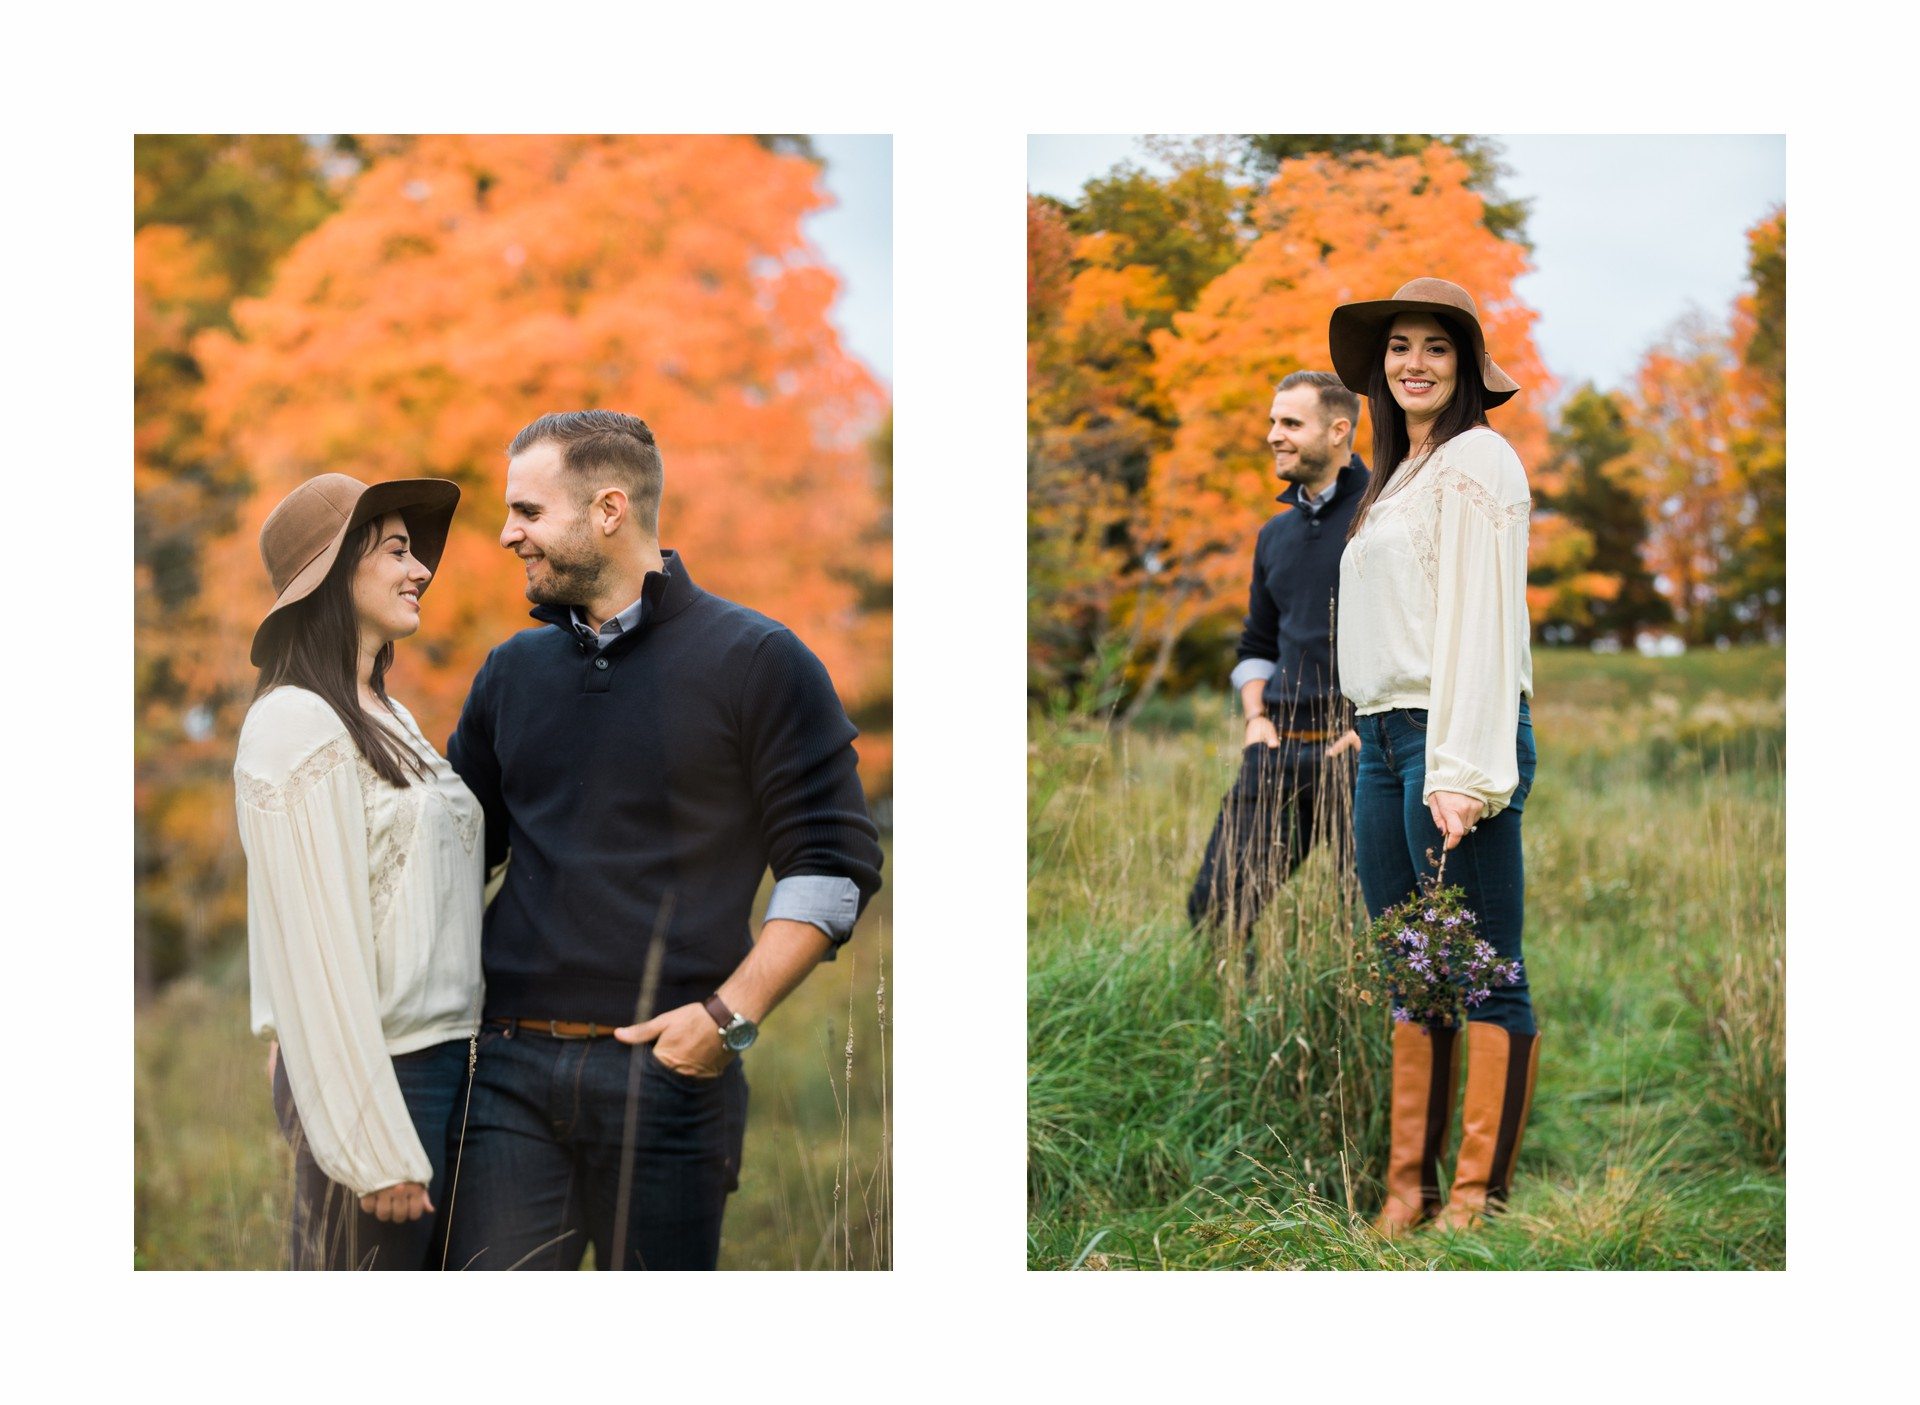 Cleveland Fall Engagement Photos at Patterson Fruit Farm 21.jpg